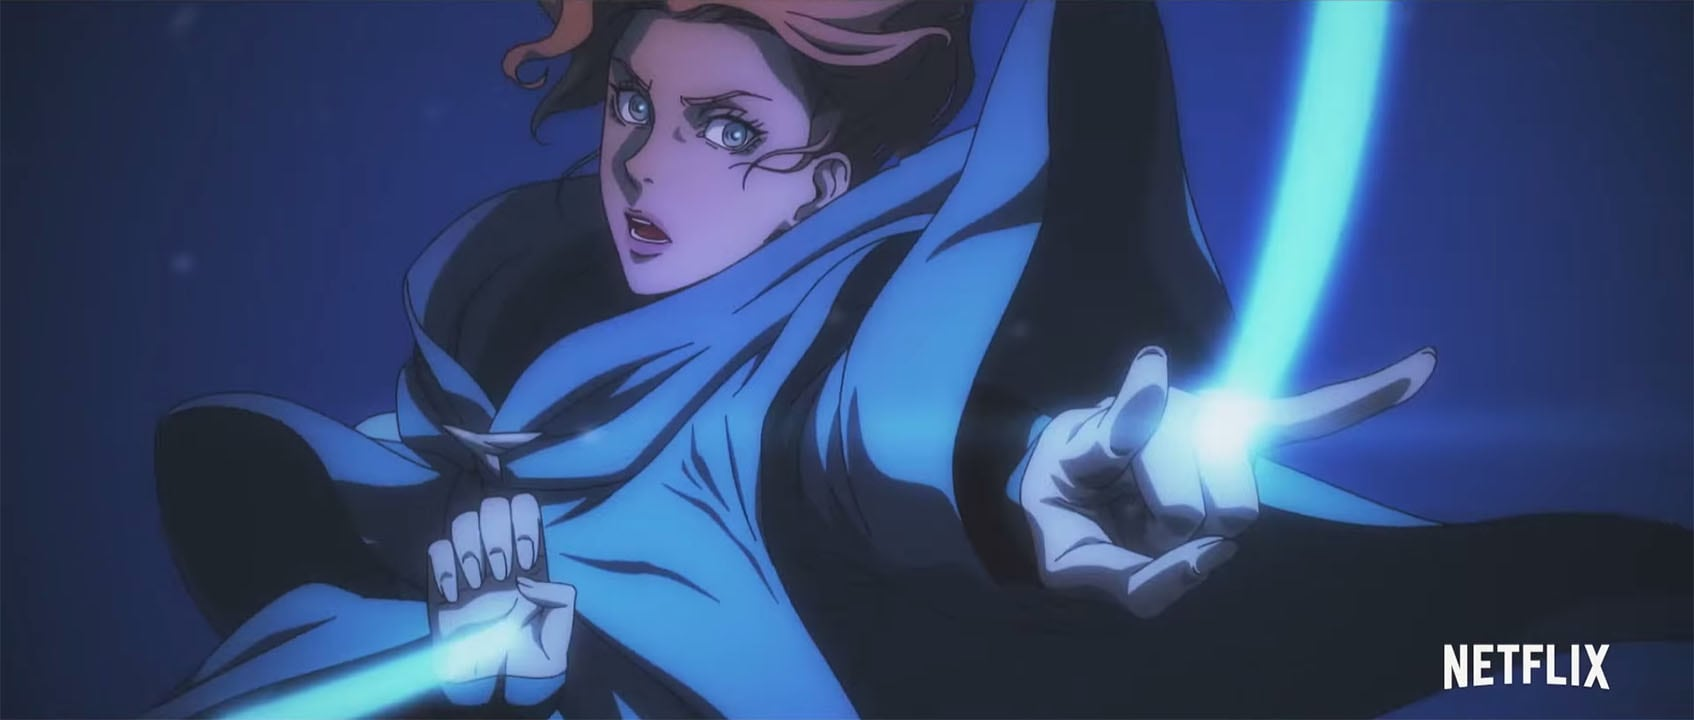 Netflix's Castlevania Gets First Teaser Trailer, Coming July 7